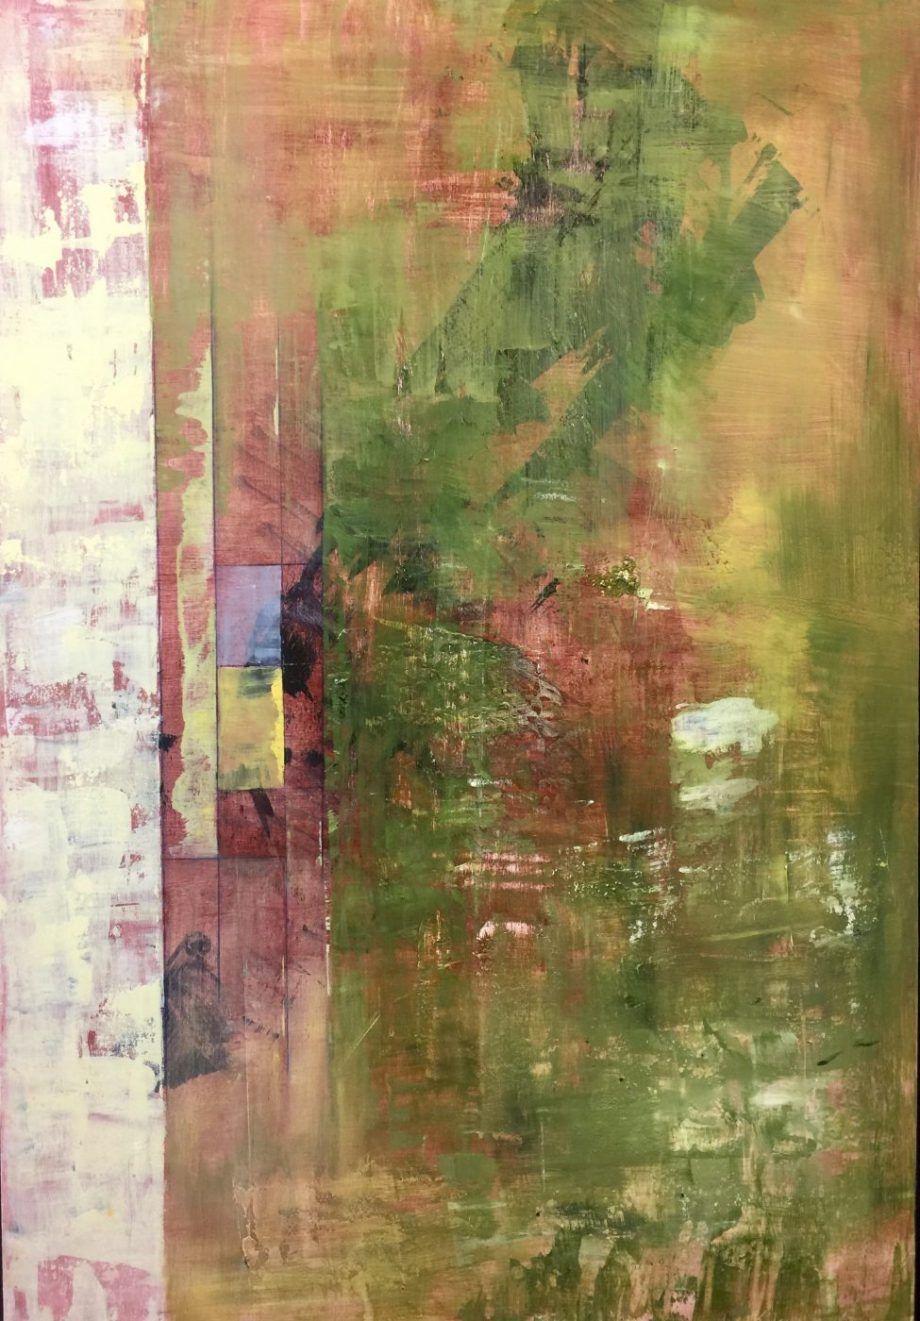 Jack London, No. 5 by Kristen Jensen. (Abstract Acrylic Painting)